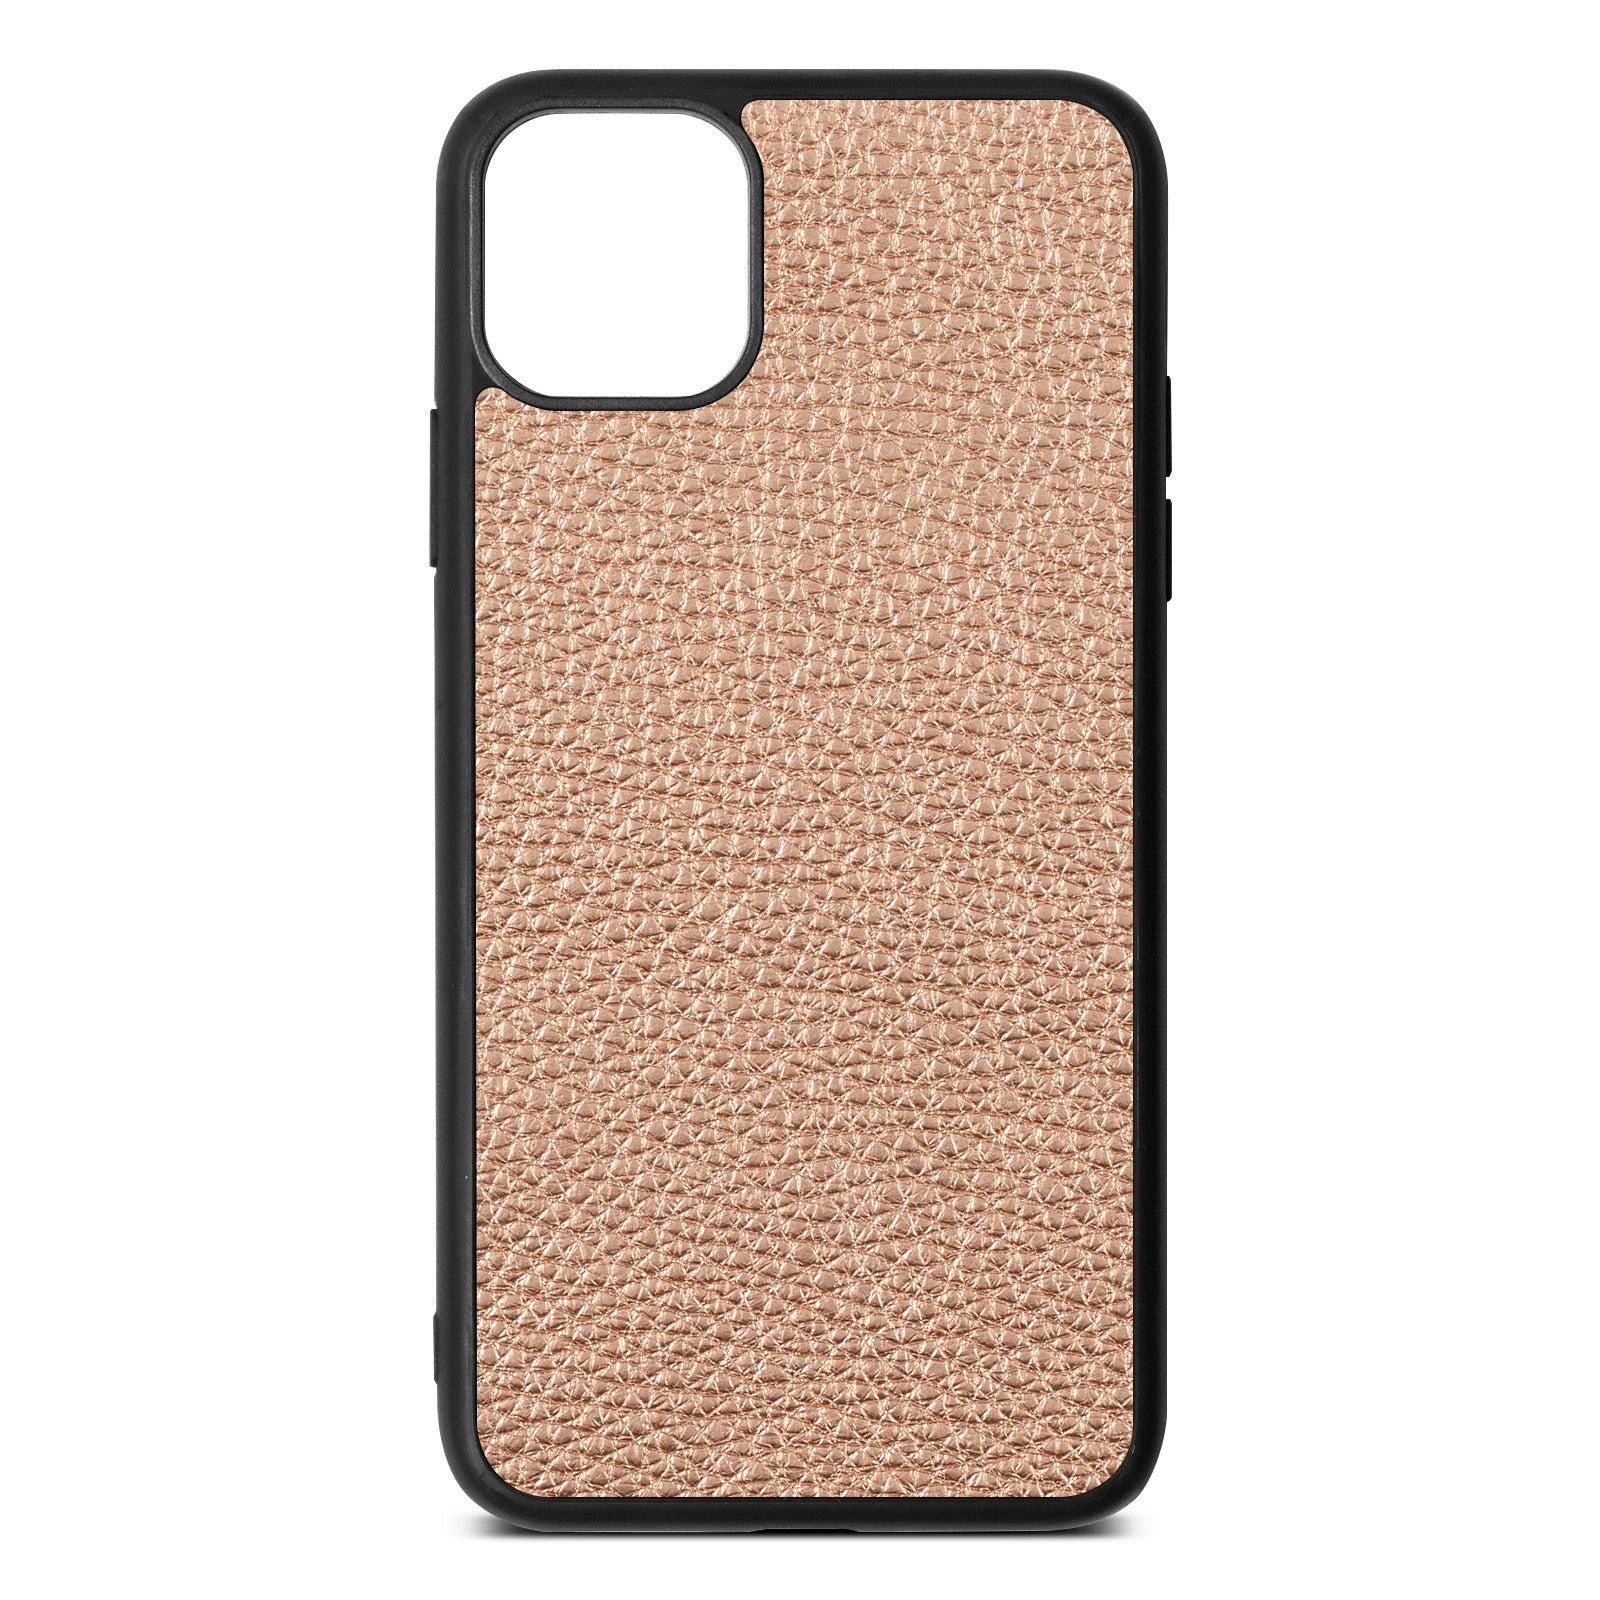 Blank iPhone 11 Pro Max Rose Gold Pebble Leather Case